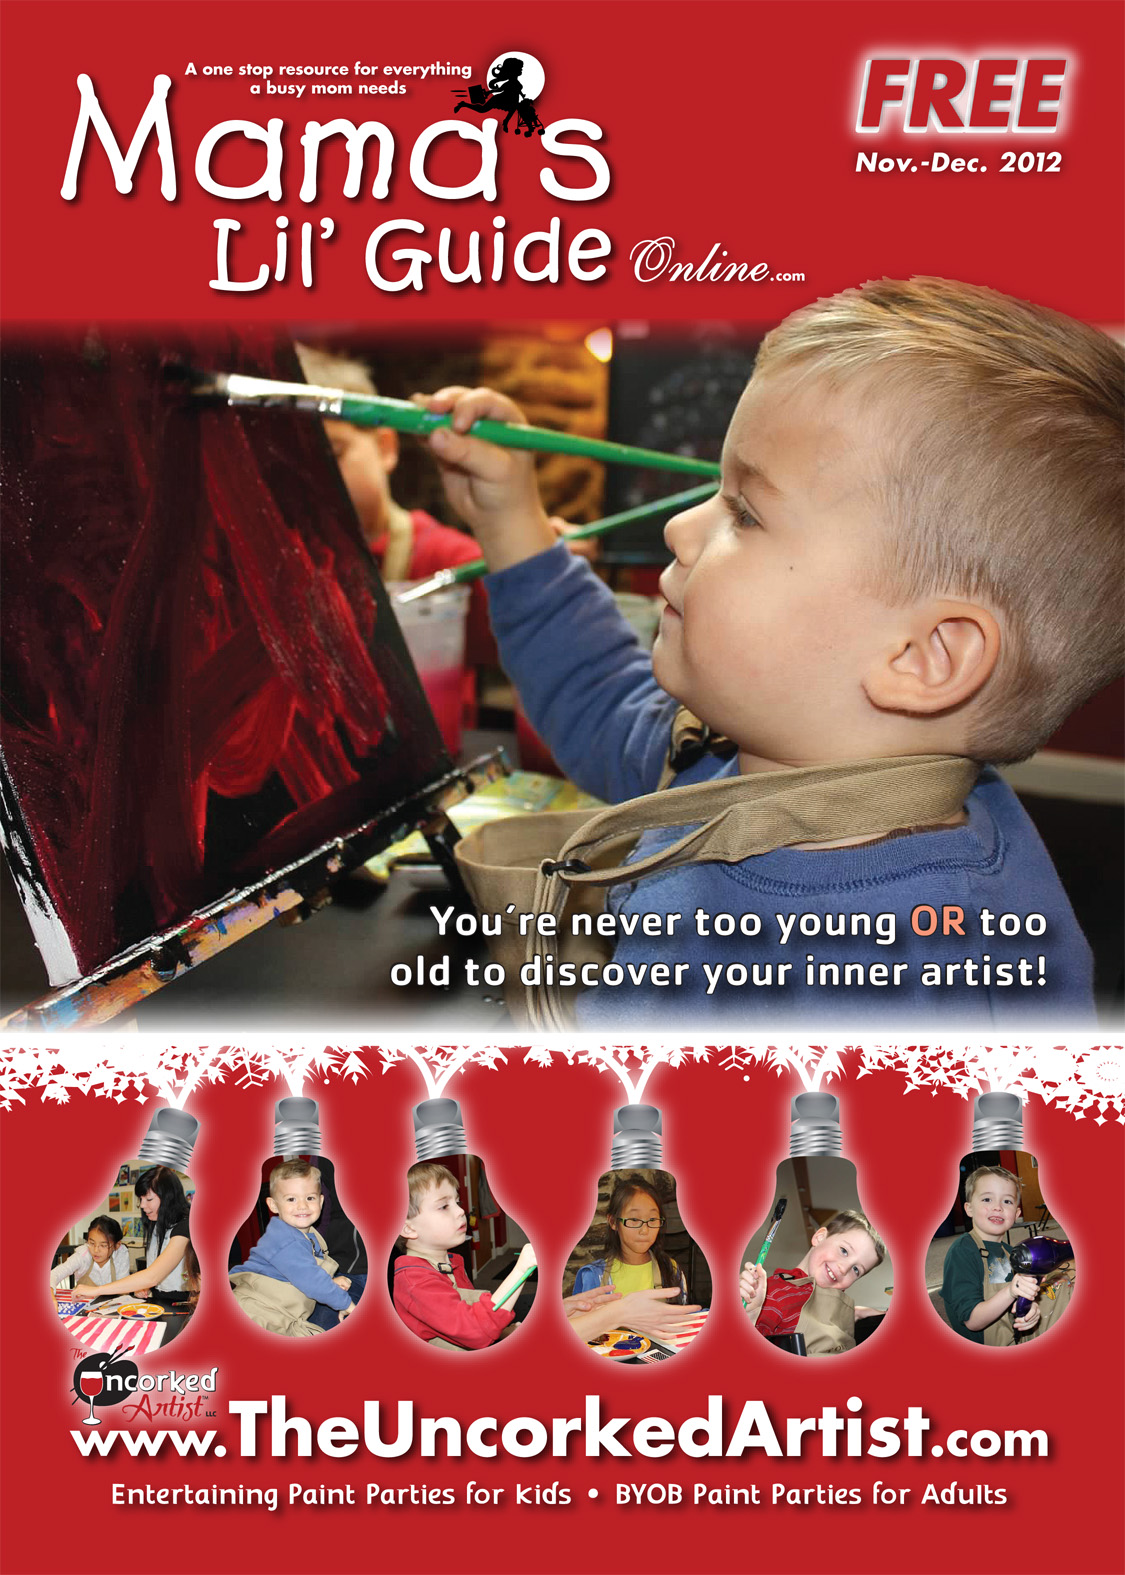 Mamas Lil' Guide November/December 2012 Issue